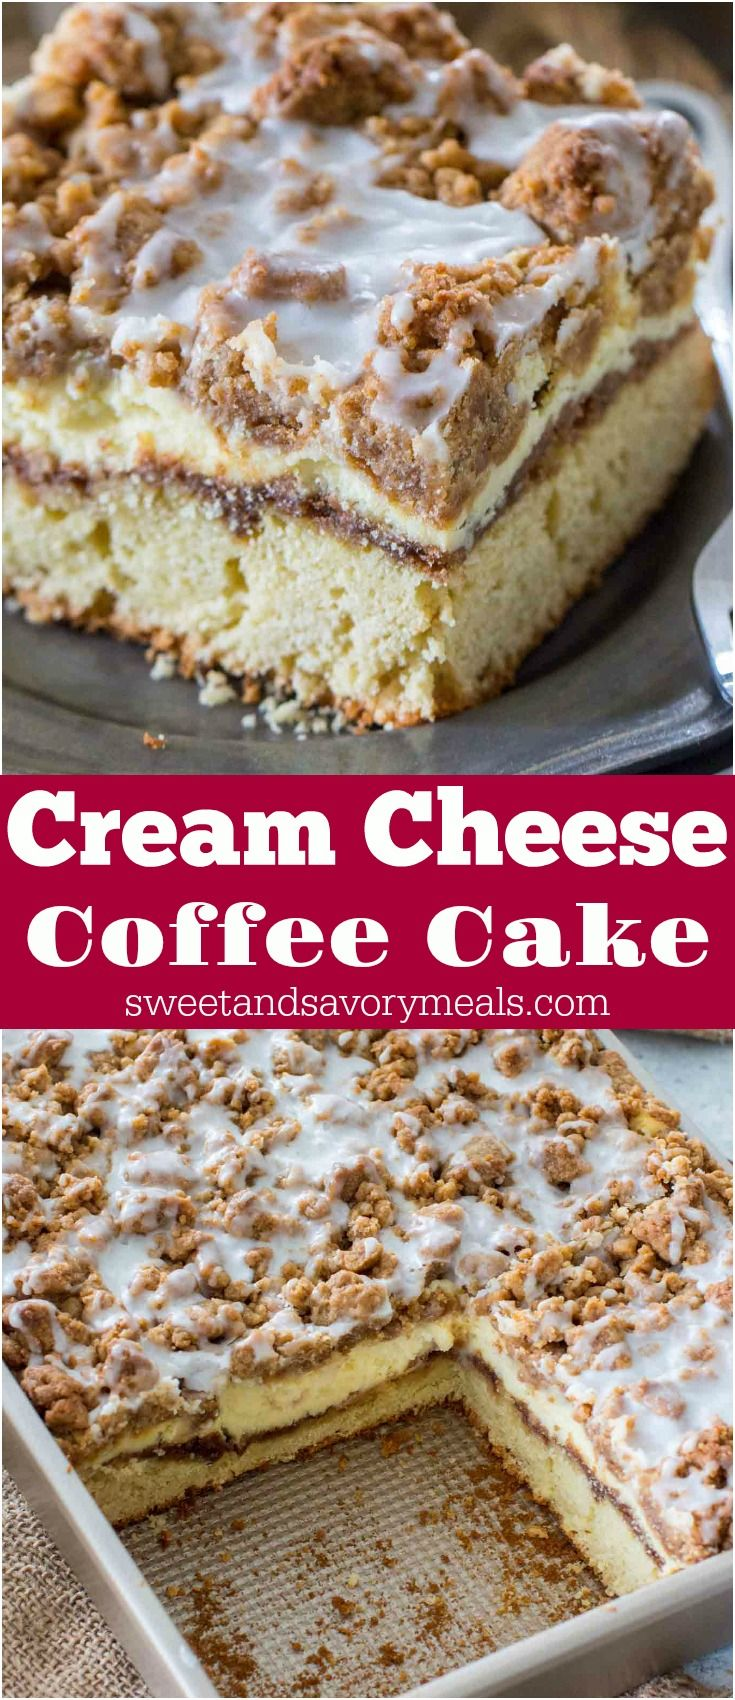 Coffee Cake recipe that you will make over and over again. A buttery cake, topped with cinnamon filling, vanilla cheesecake and a sweet streusel topping. #cake #coffeecake #dessert #streusel #cinnamonfilling